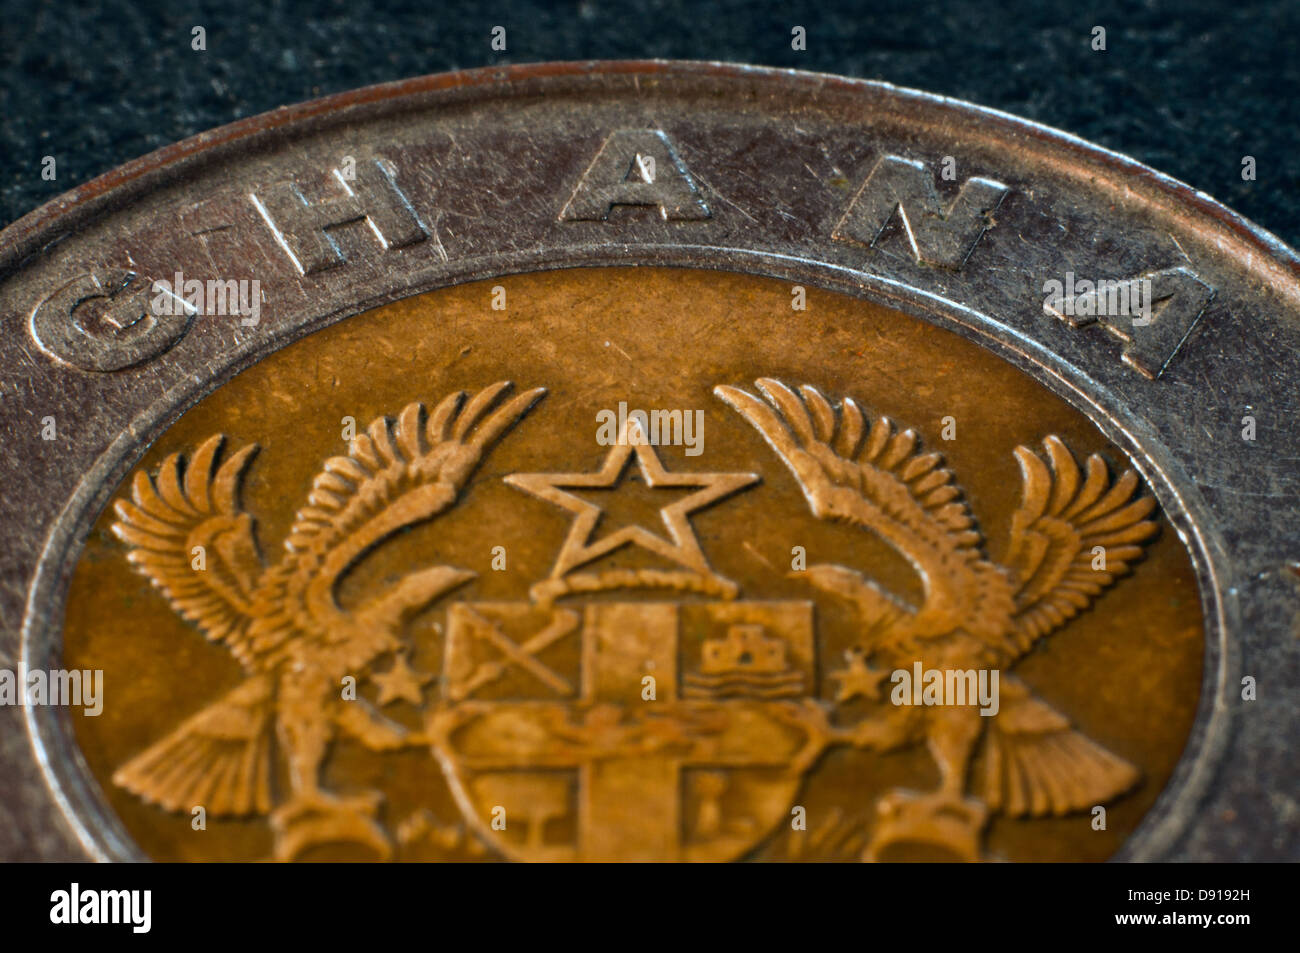 old ghanian coin, ghana, in studio setting - Stock Image